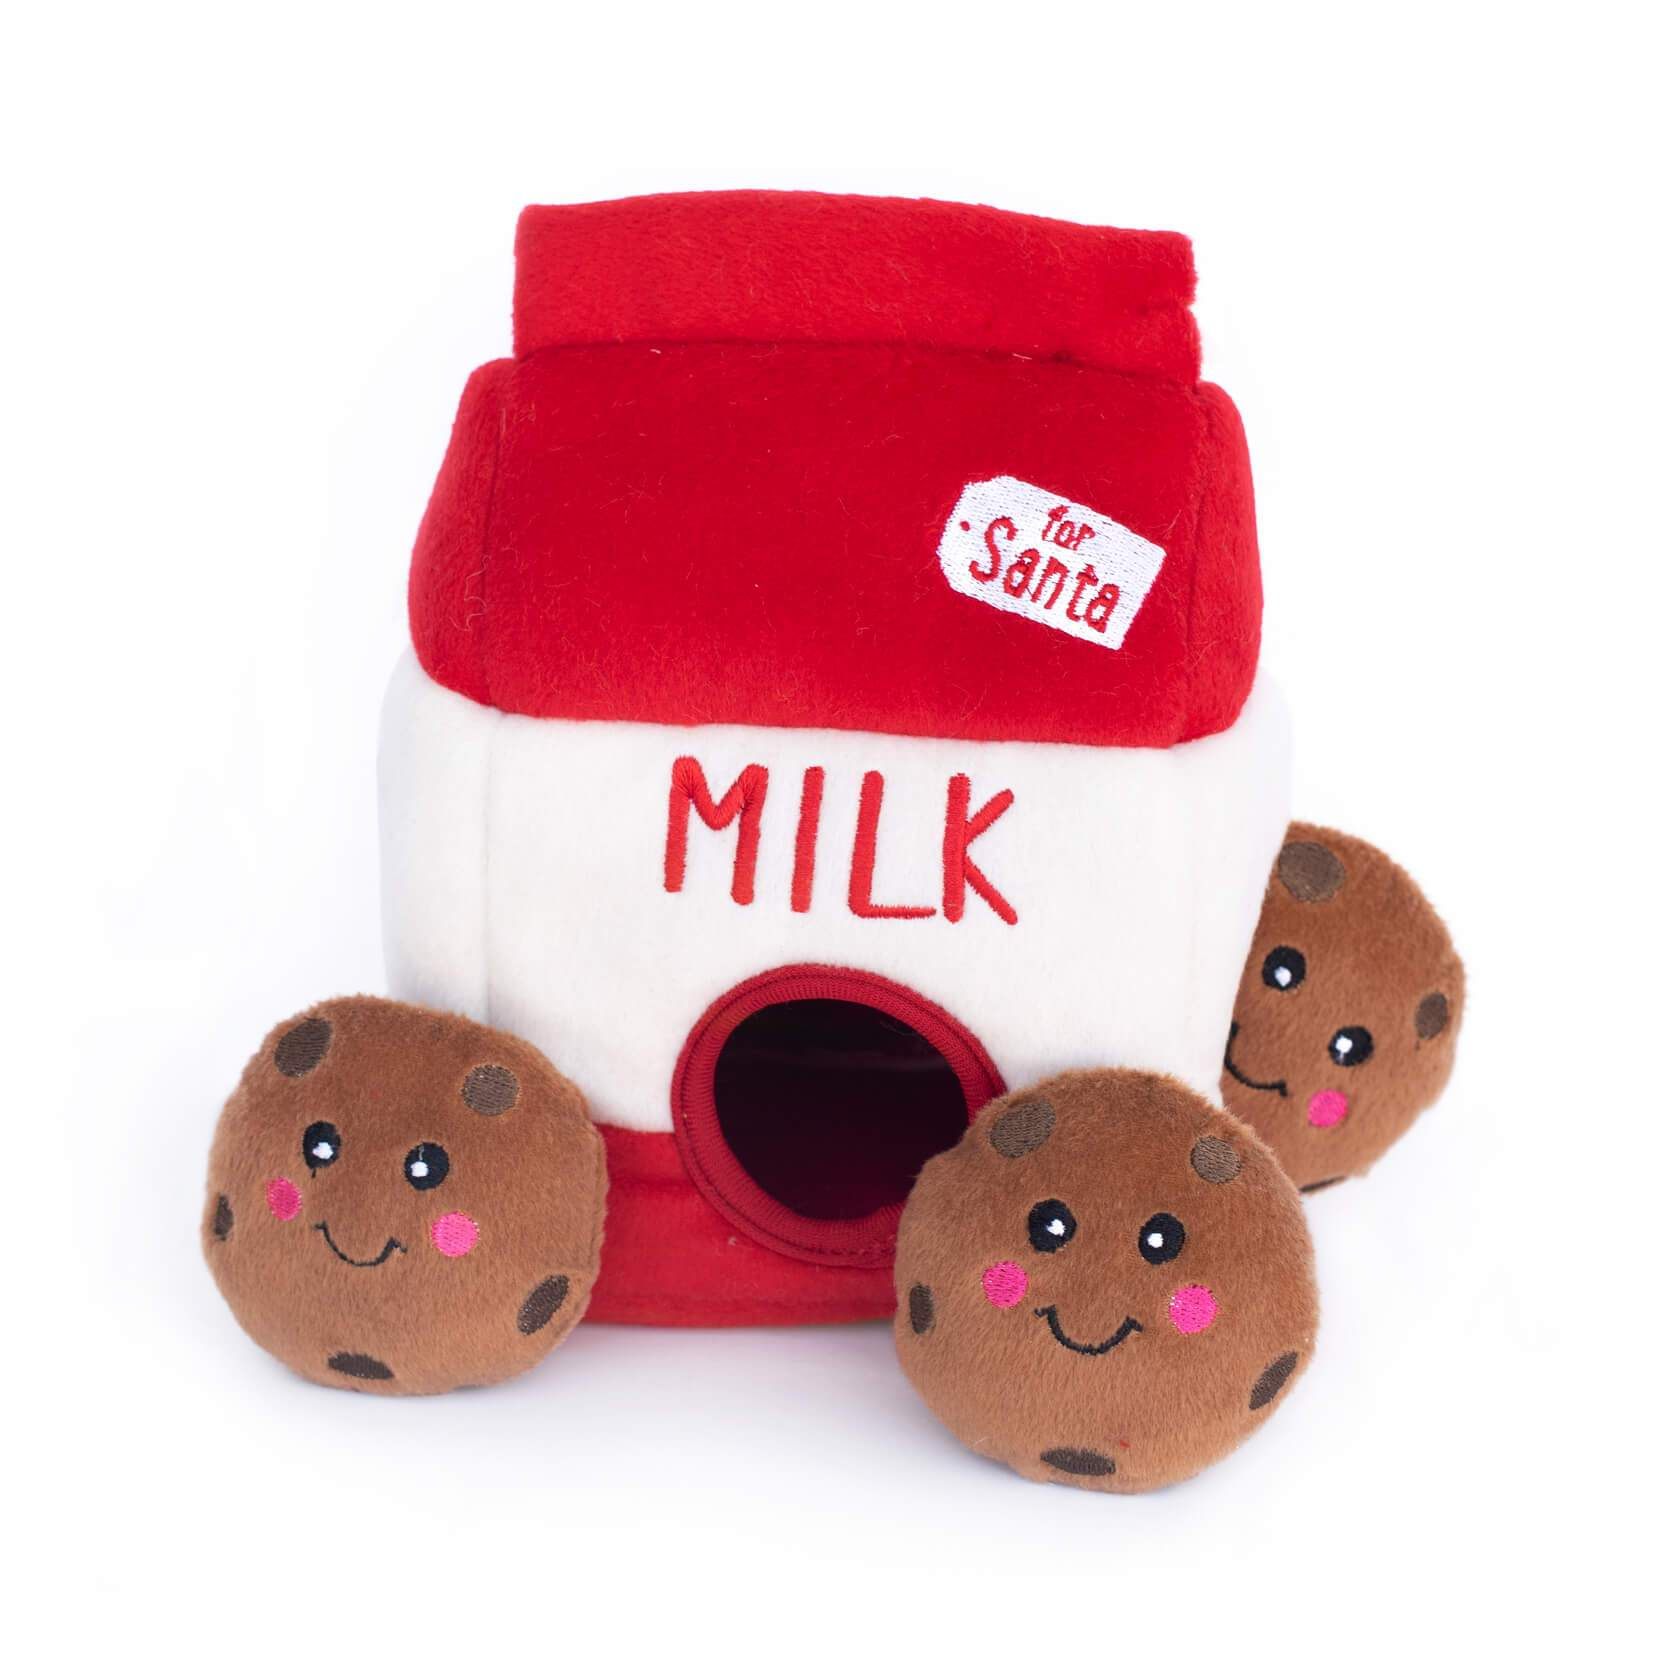 Zippy Paws Santa's Milk and Cookies Plush Dog Toy 1